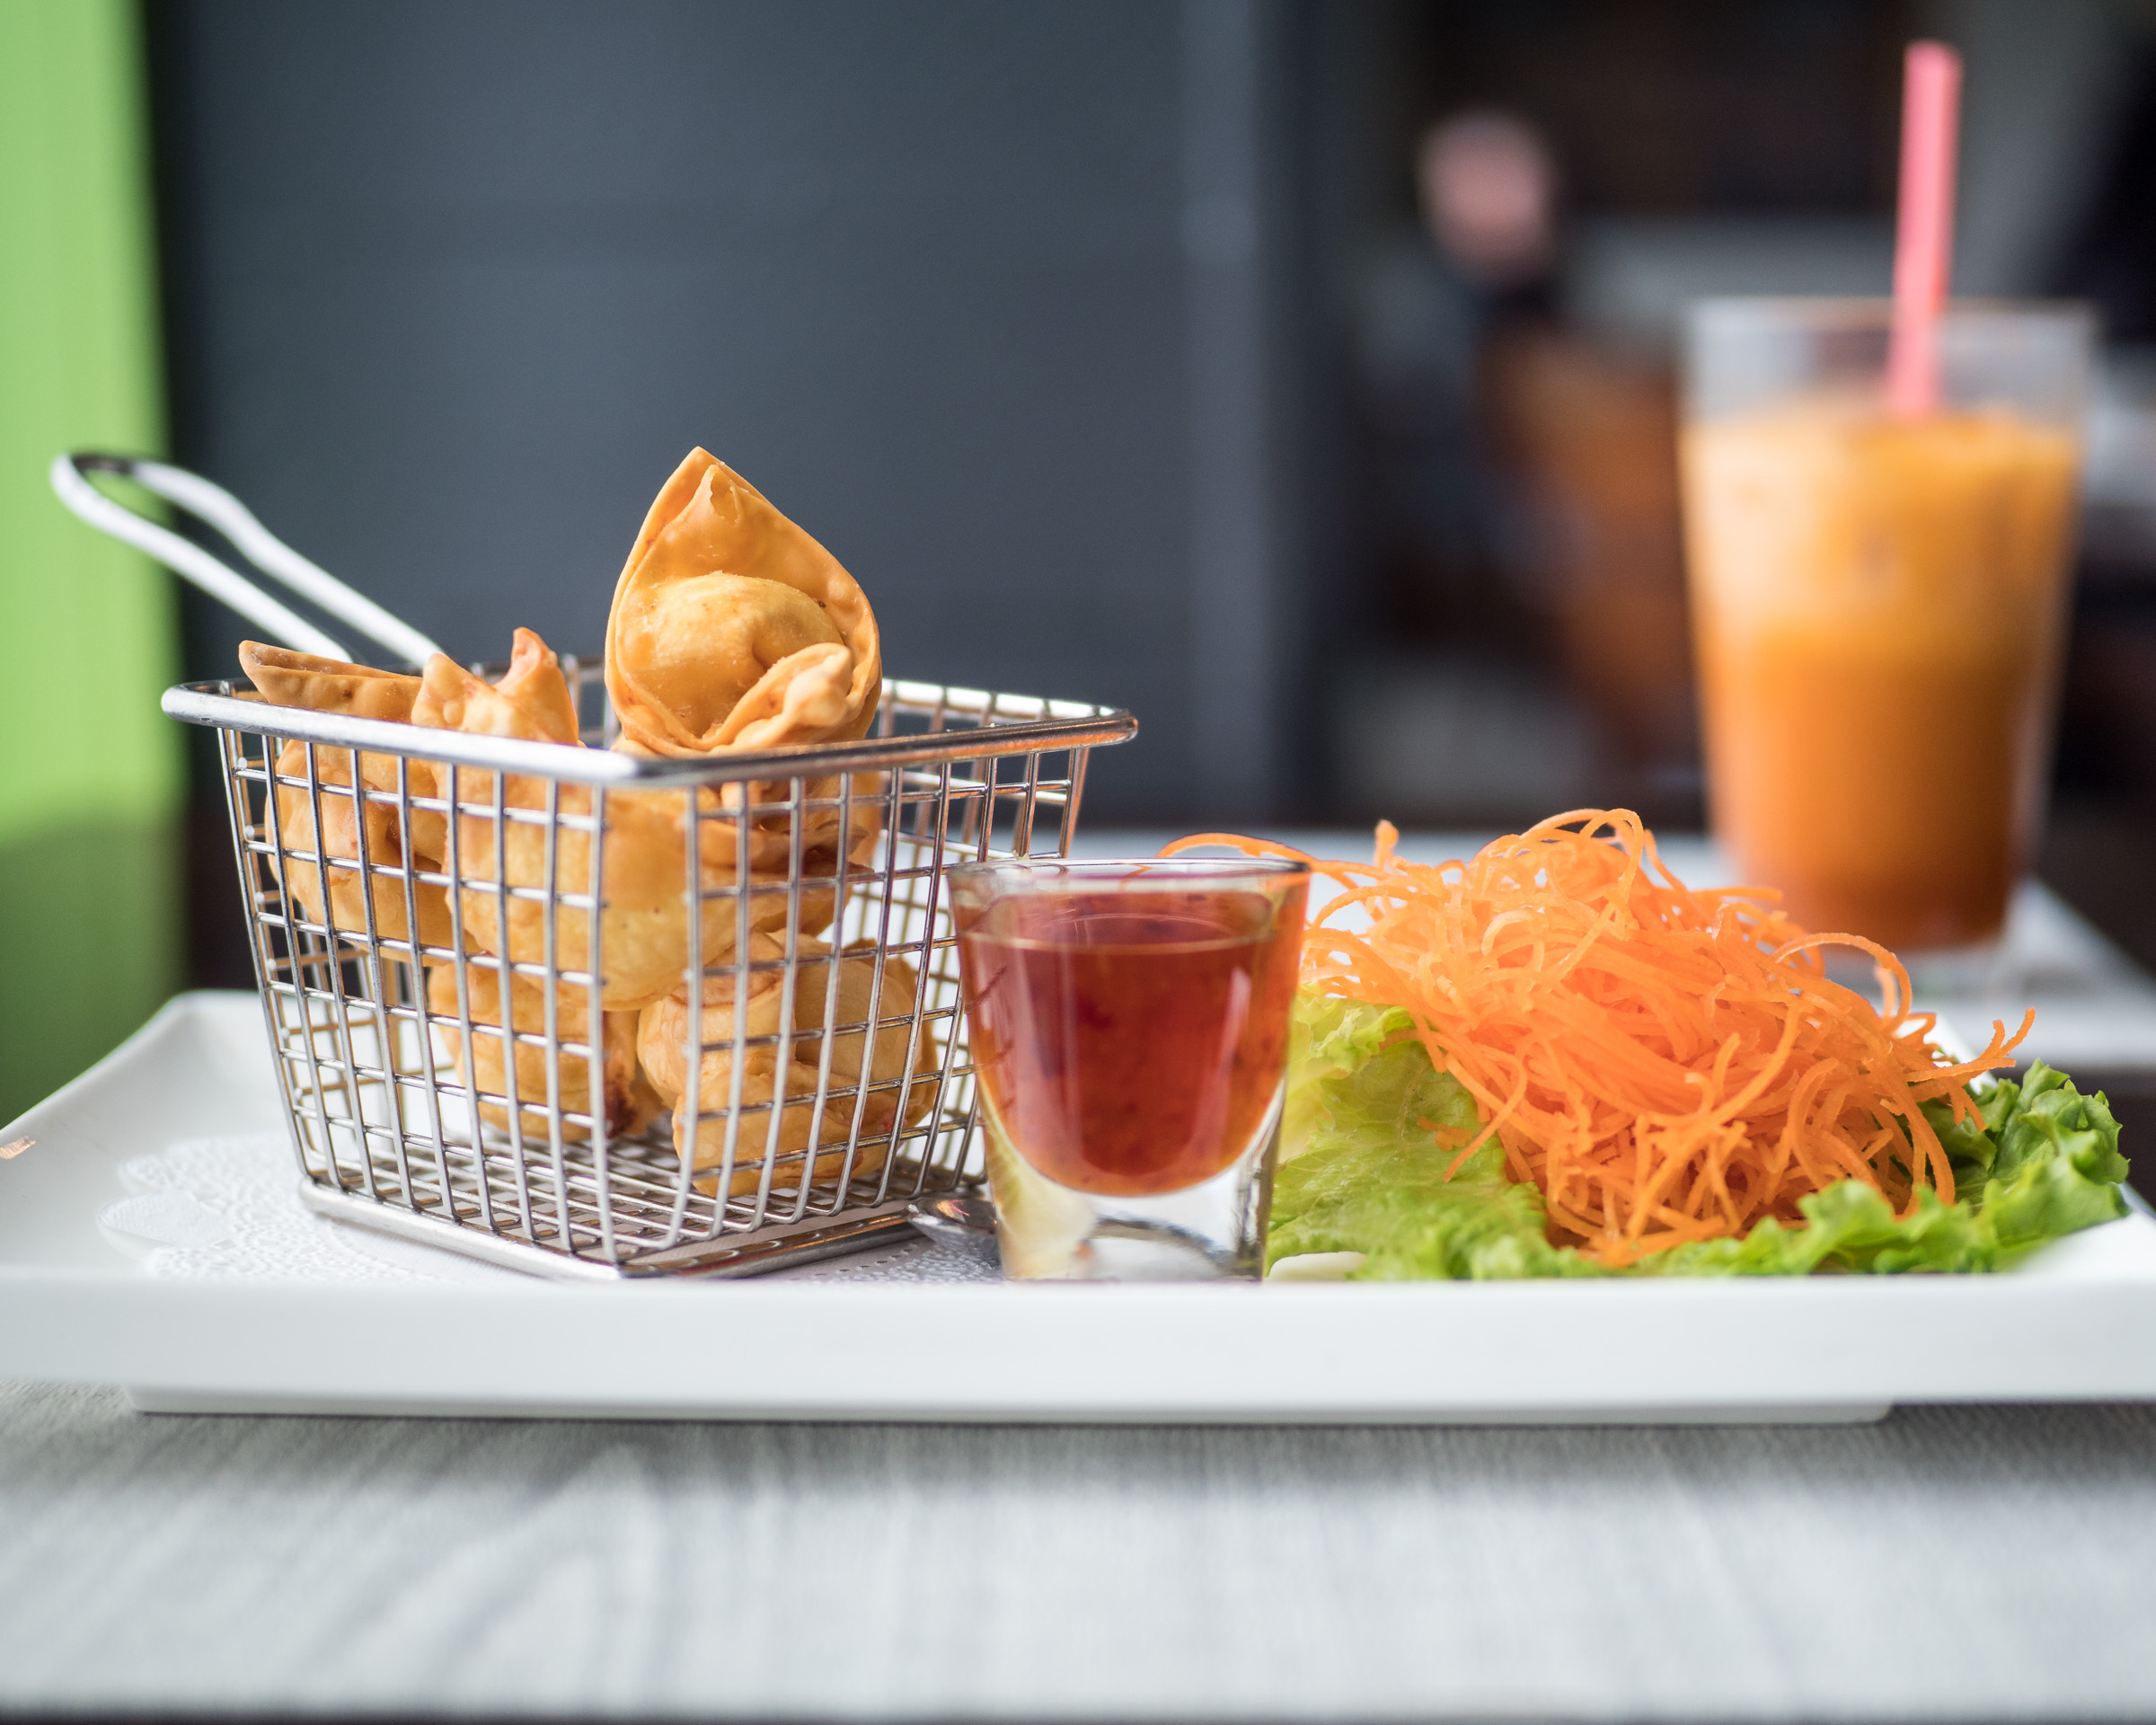 fare photo portland oregon food photographer photography jeremy pawlowski texas austin amarillo classic thai cuisine fried